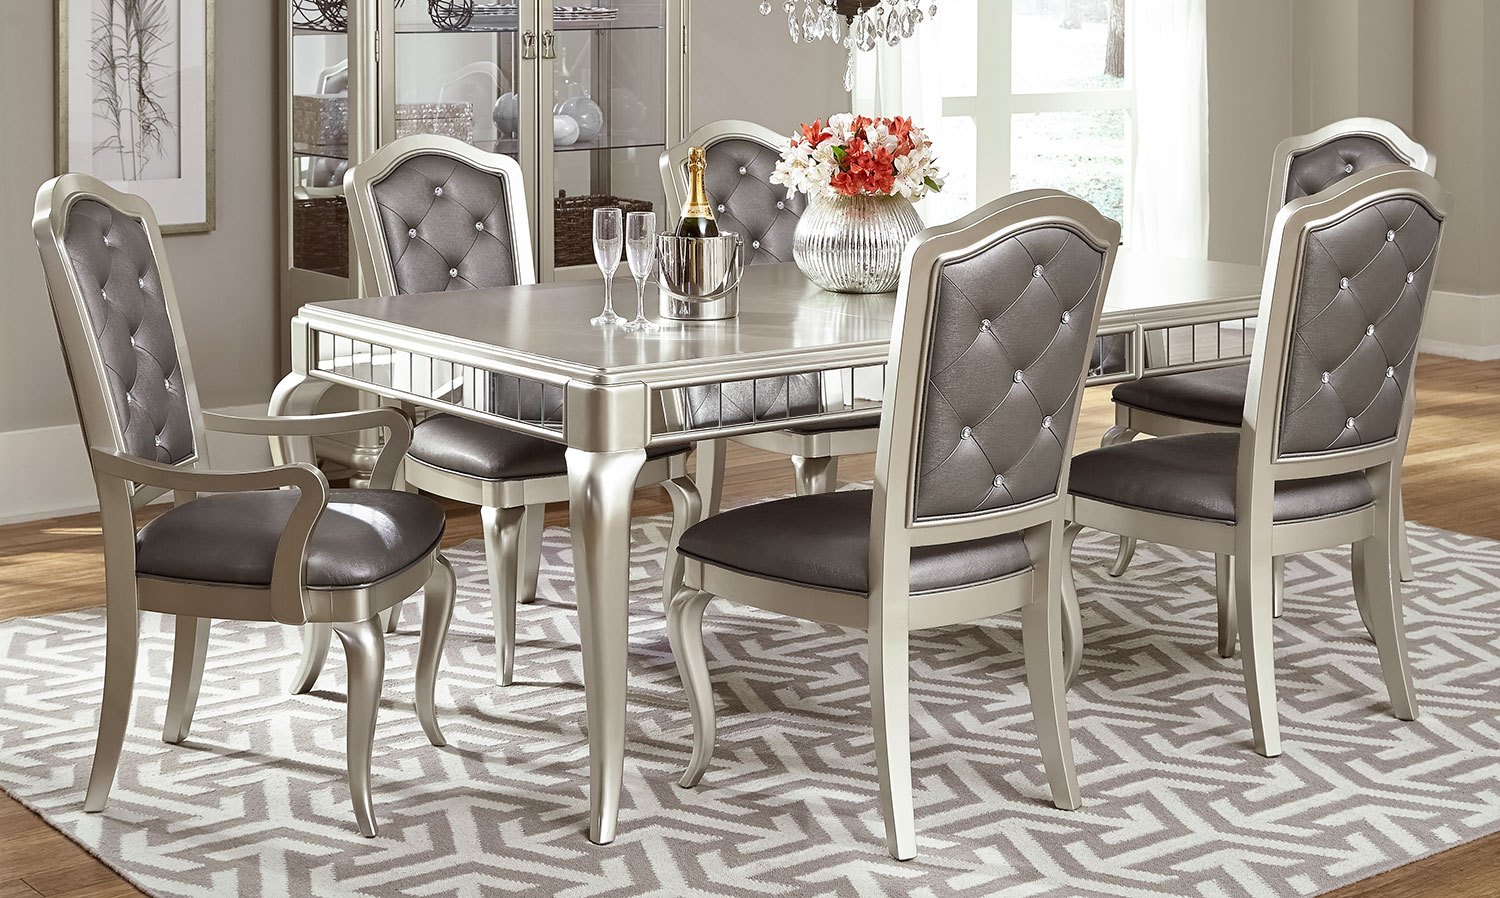 Dining Room Furniture - Diva 7-Piece Dining Room Set - Frost